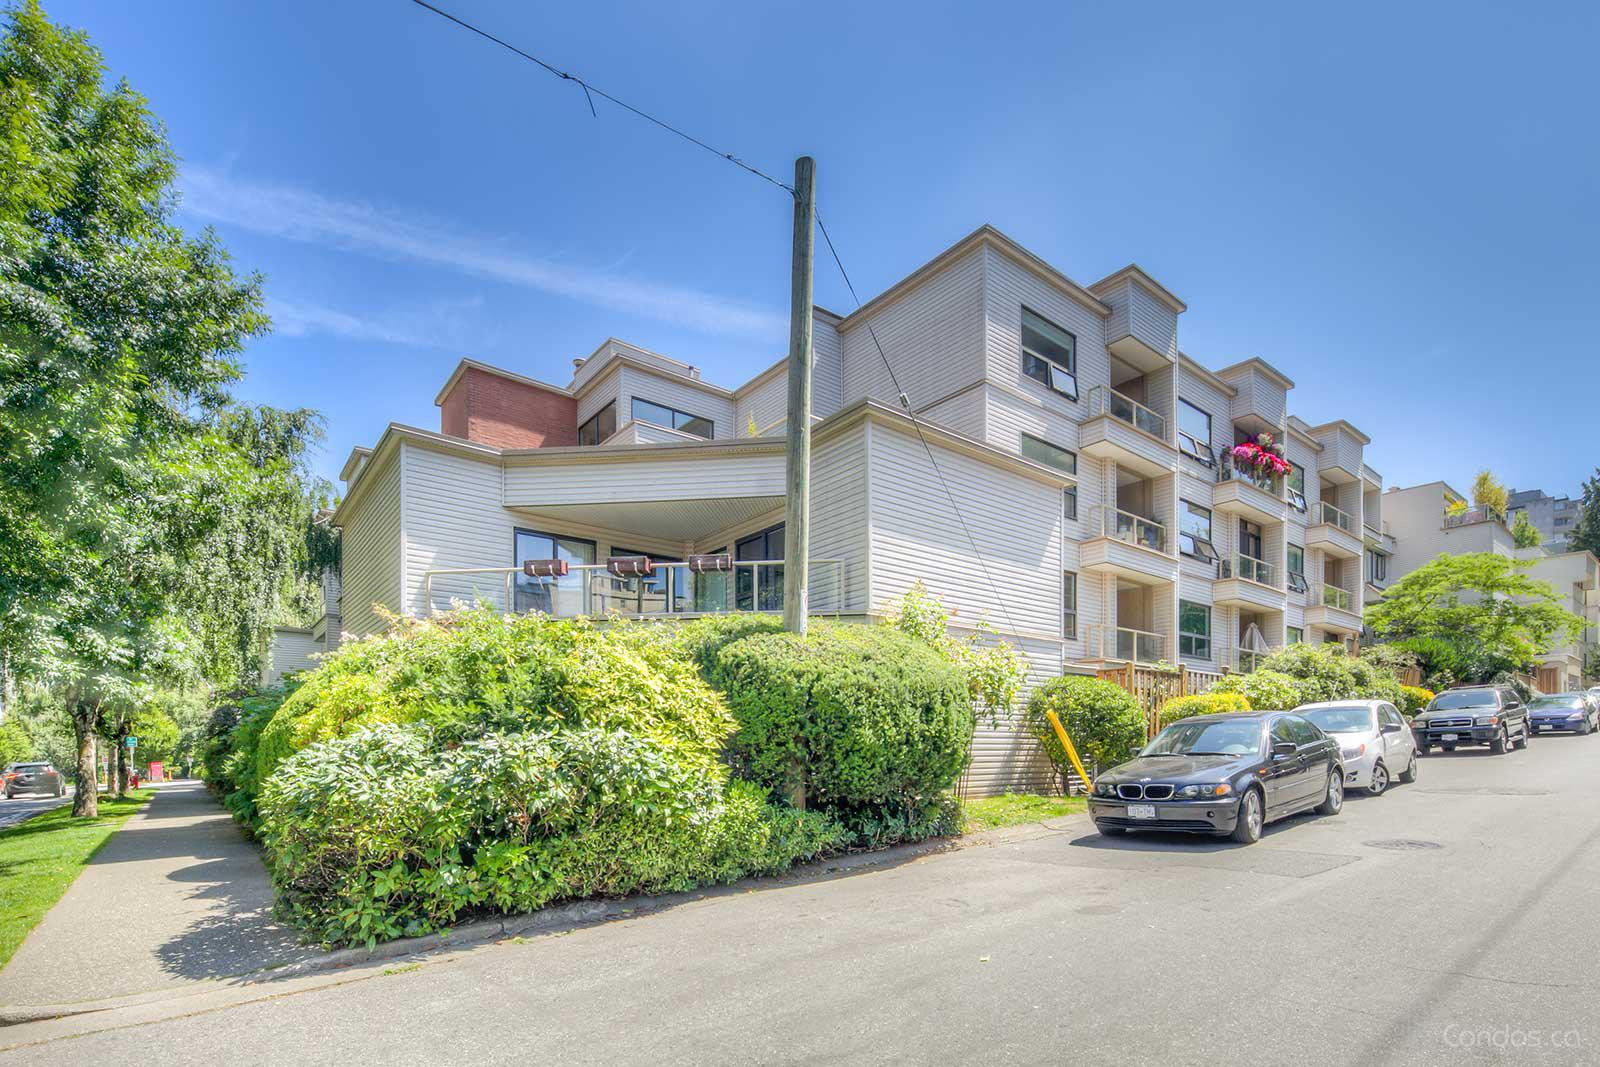 Broughton Terrace at 1350 Comox St, Vancouver 0